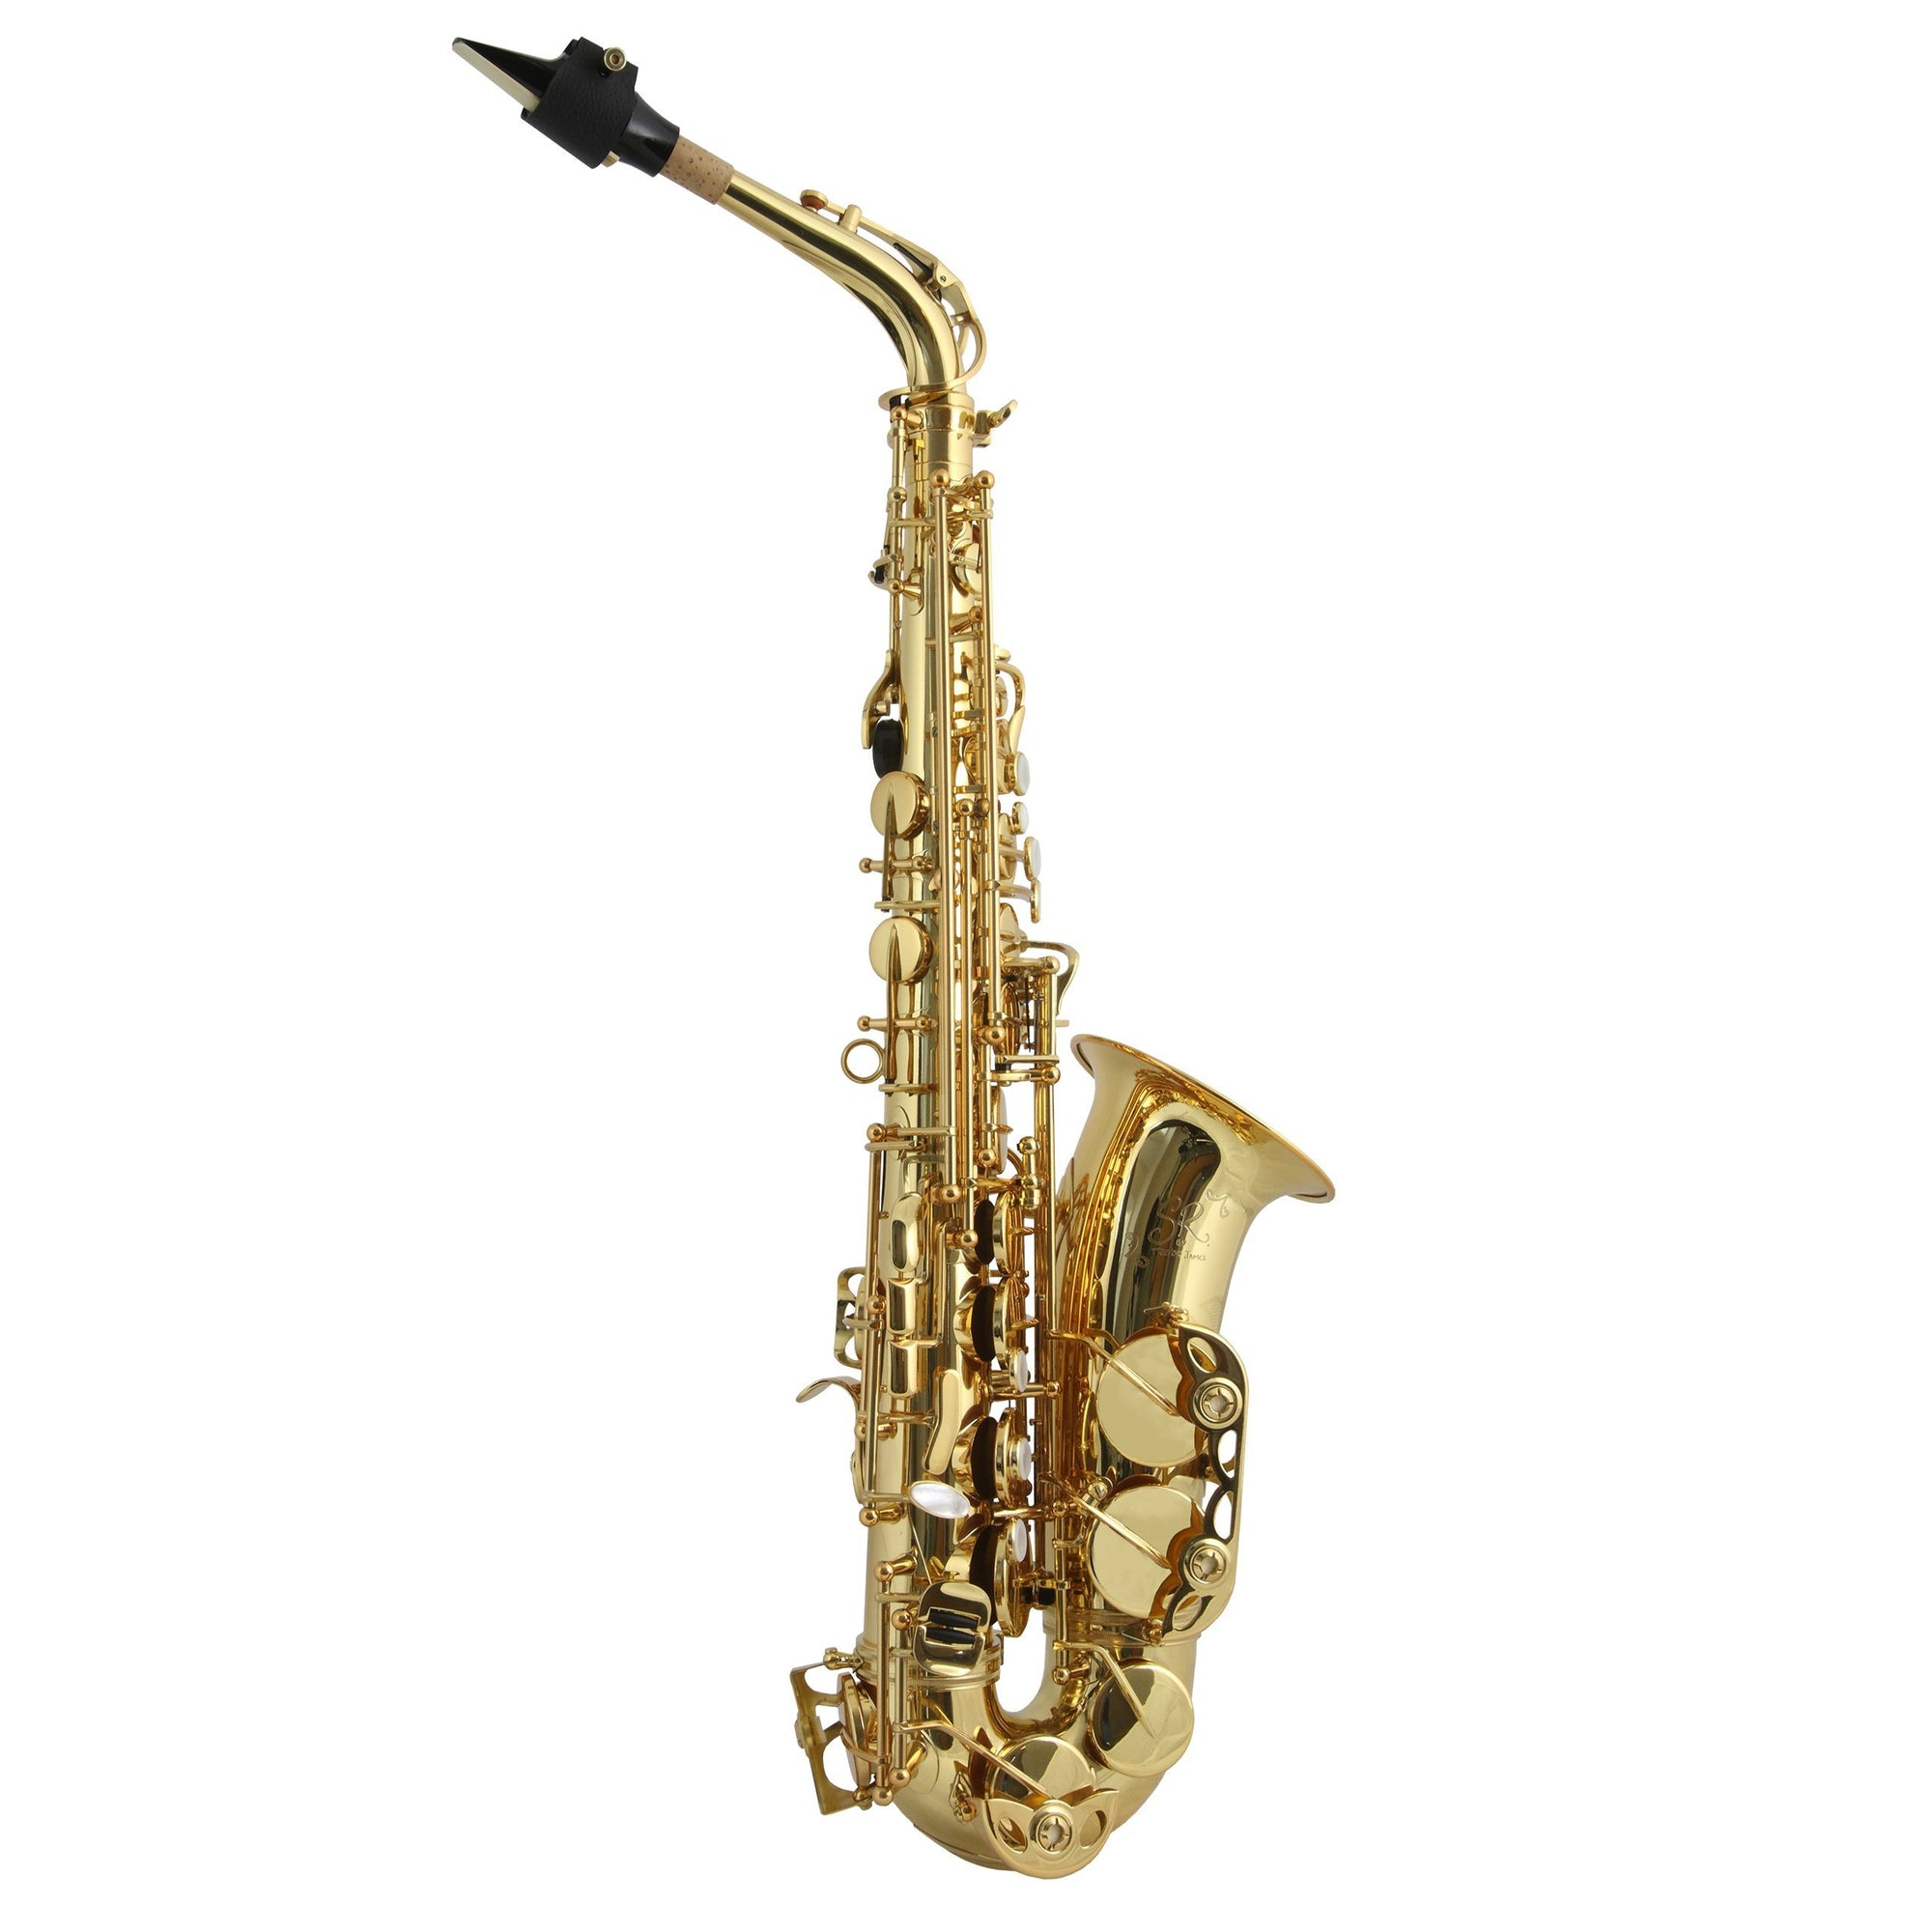 Trevor James - SR Alto Saxophones-Saxophone-Trevor James-Gold Lacquer-Music Elements